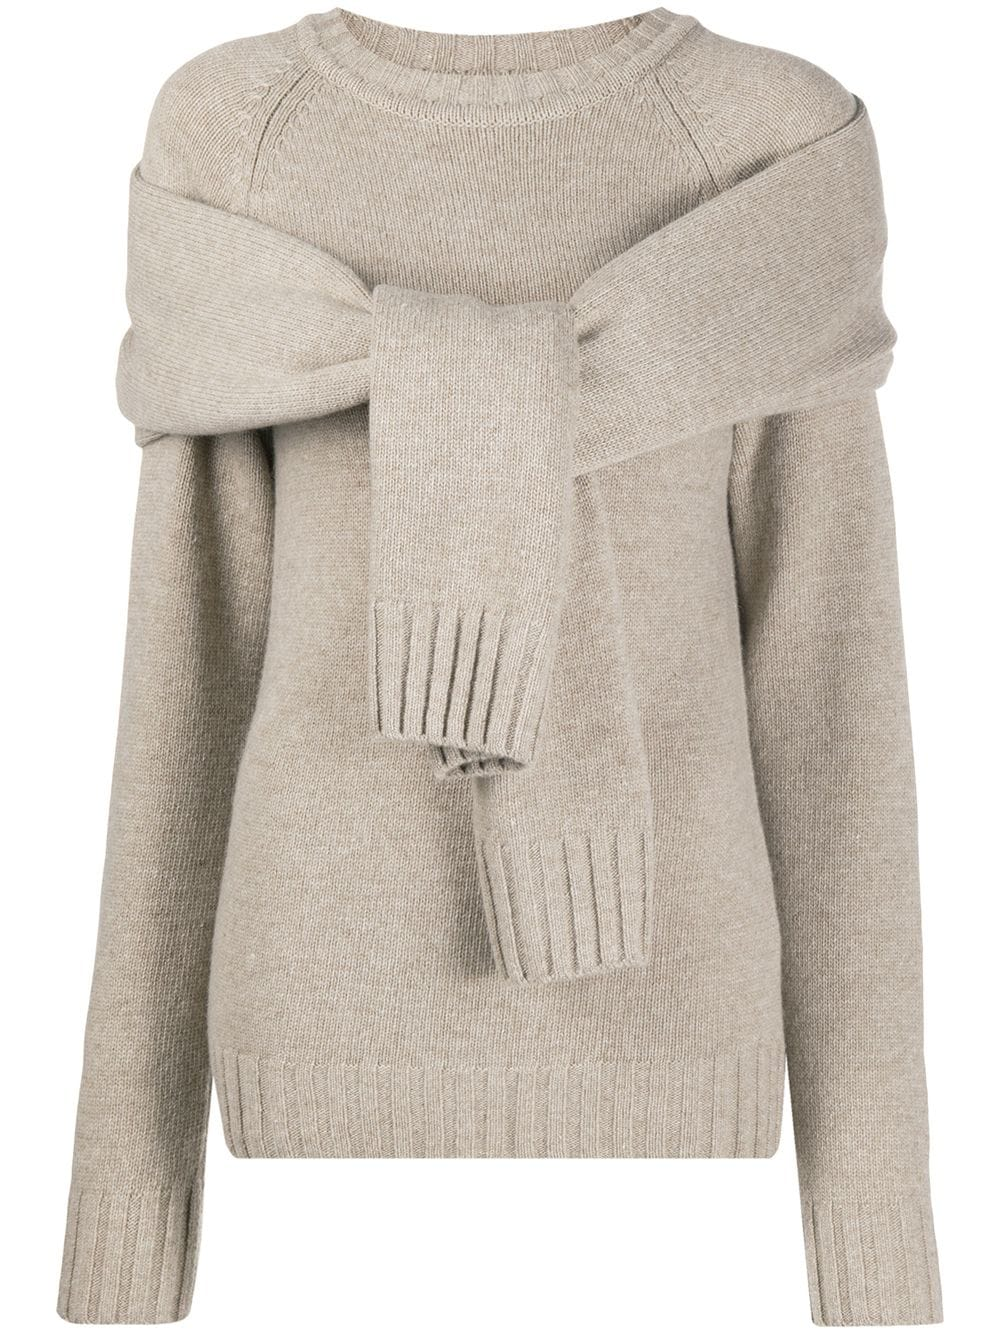 Eudon Choi tie-front sweater - Nude